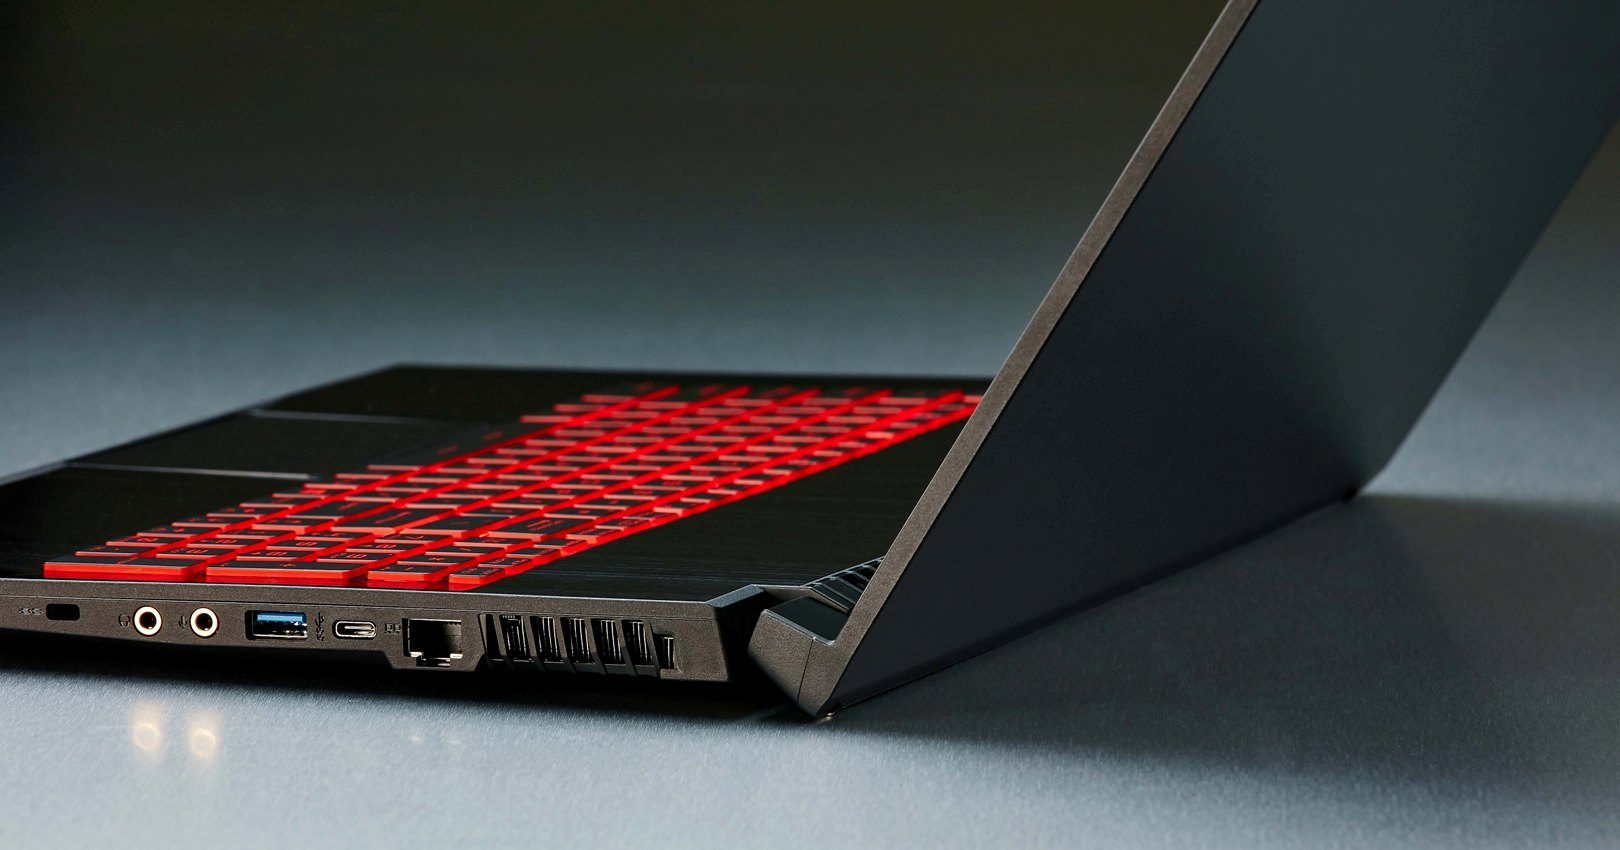 Msi Gf75 Thin Gaming Laptop Weighs Only 2 2kgs